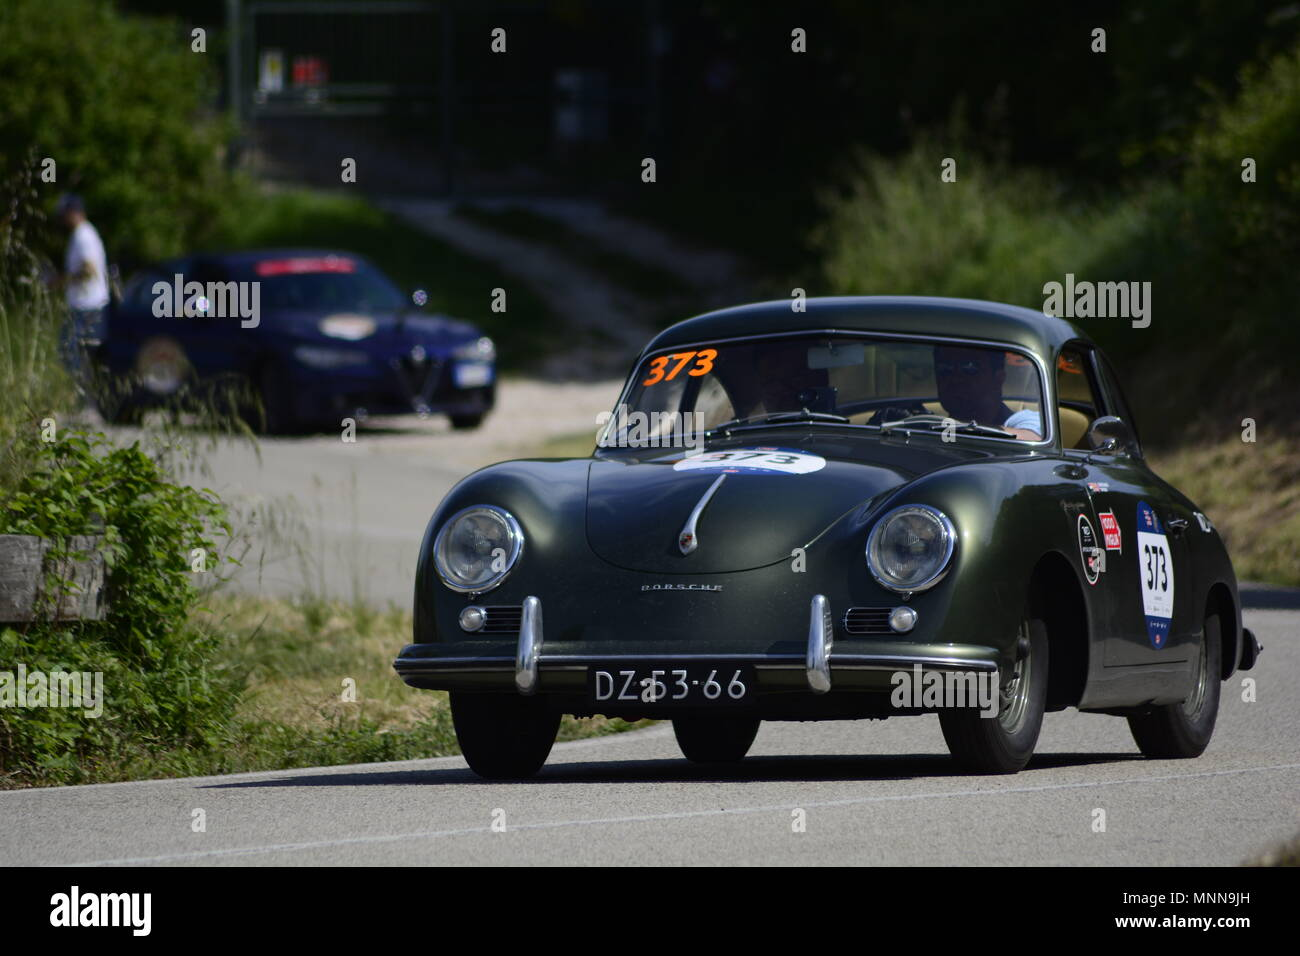 PESARO SAN BARTOLO , ITALY - MAY 17 - 2018 : PORSCHE 356 1500 1955 on an old racing car in rally Mille Miglia 2018 the famous italian historical - Stock Image